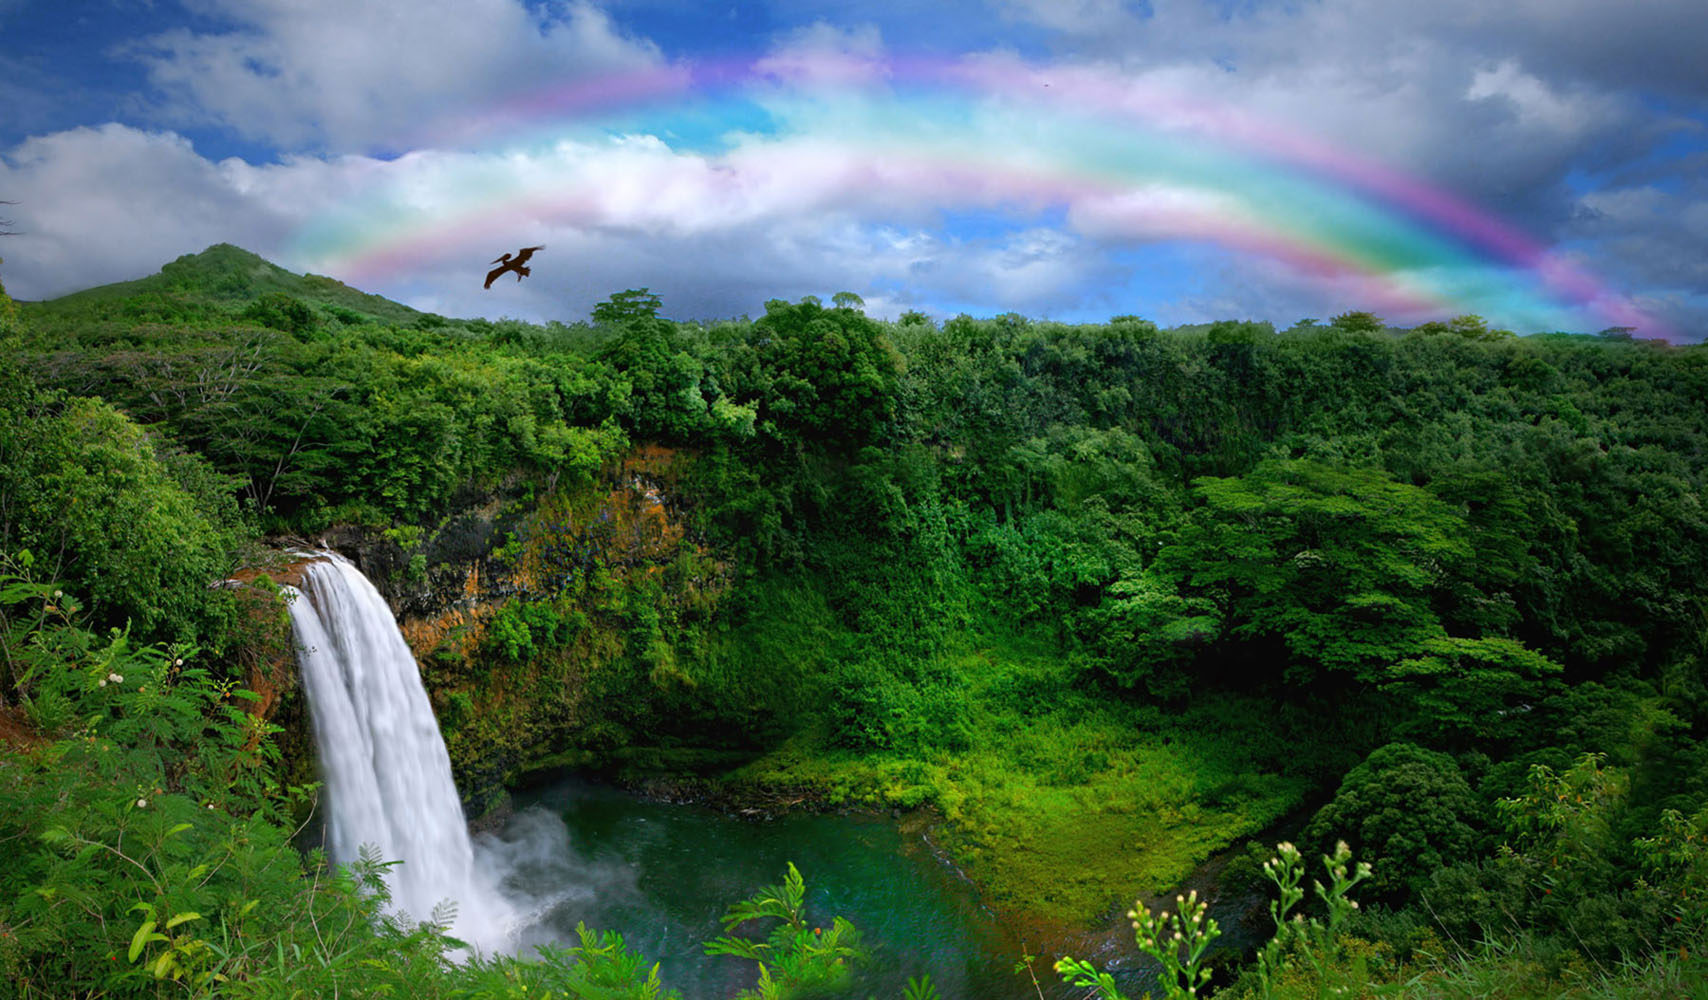 Waterfall With Rainbow in Kauai, Hawaii